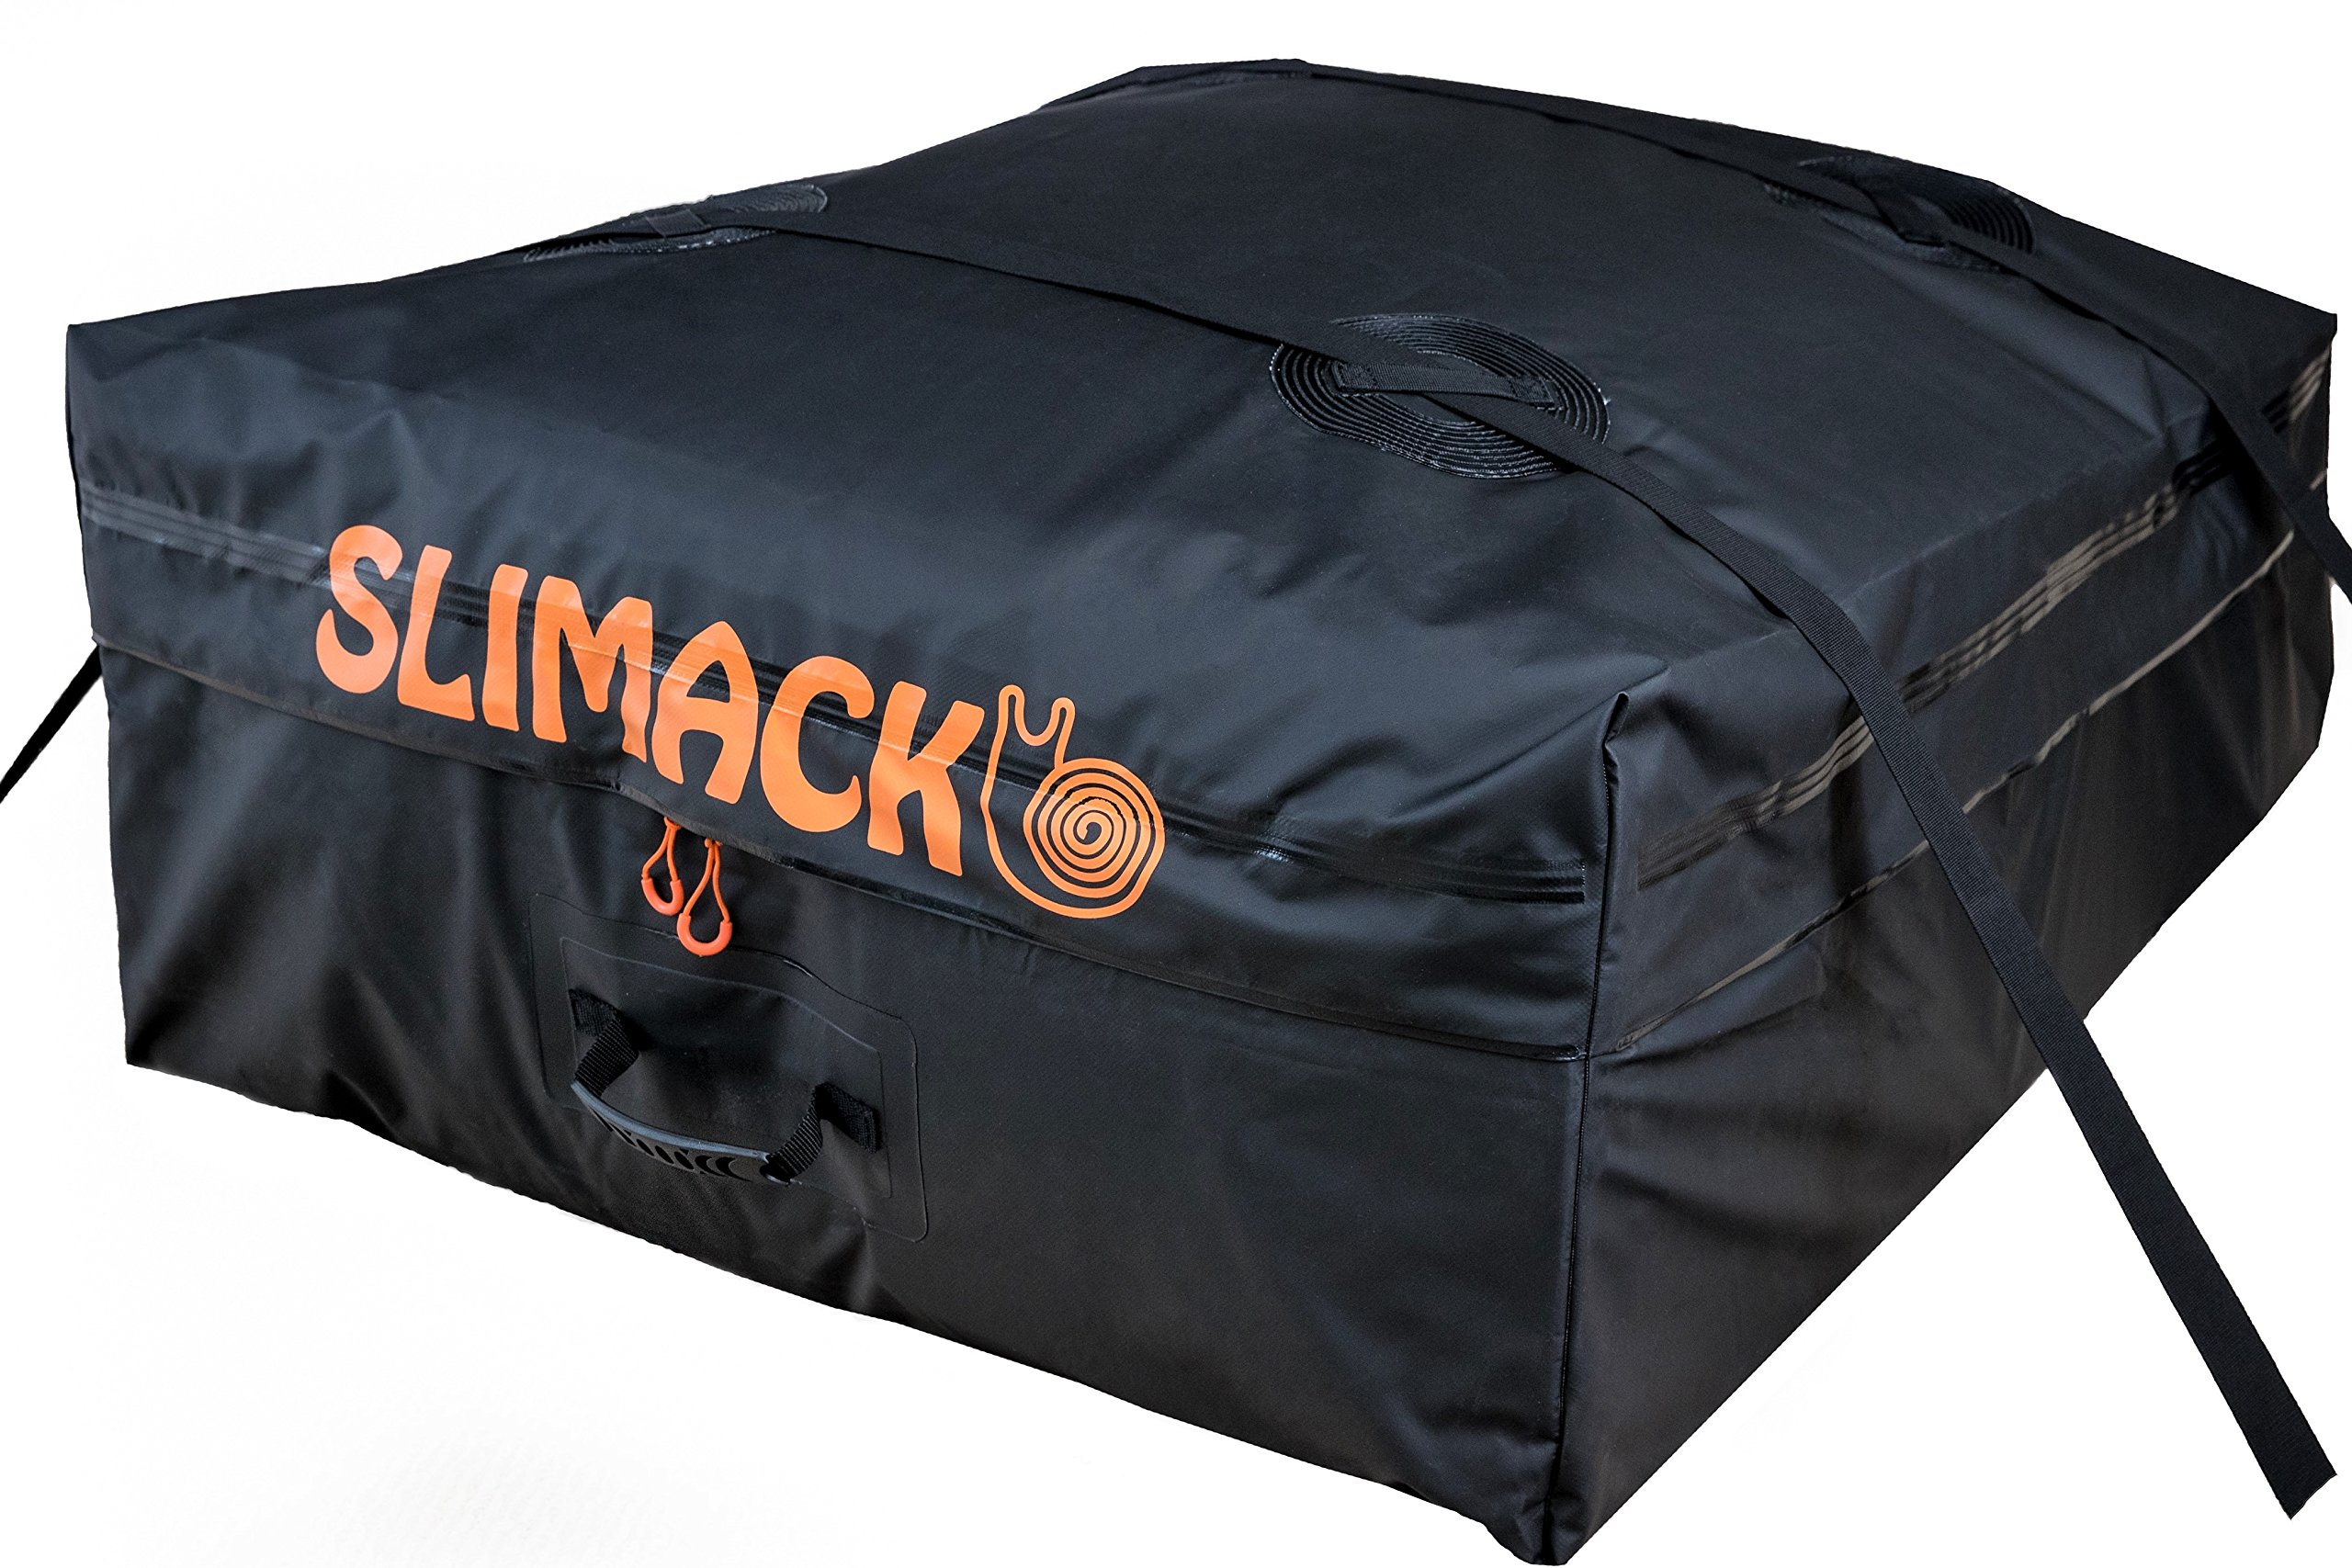 Rooftop Cargo Carrier Bag Waterproof Luggage Carrier For Cars Vans and SUVs Auto Roof Top Storage for Vehicles with or without Roof Racks Soft Travel Bag Protective Black Mat Included-13.5 Cubic Feet by Slimack